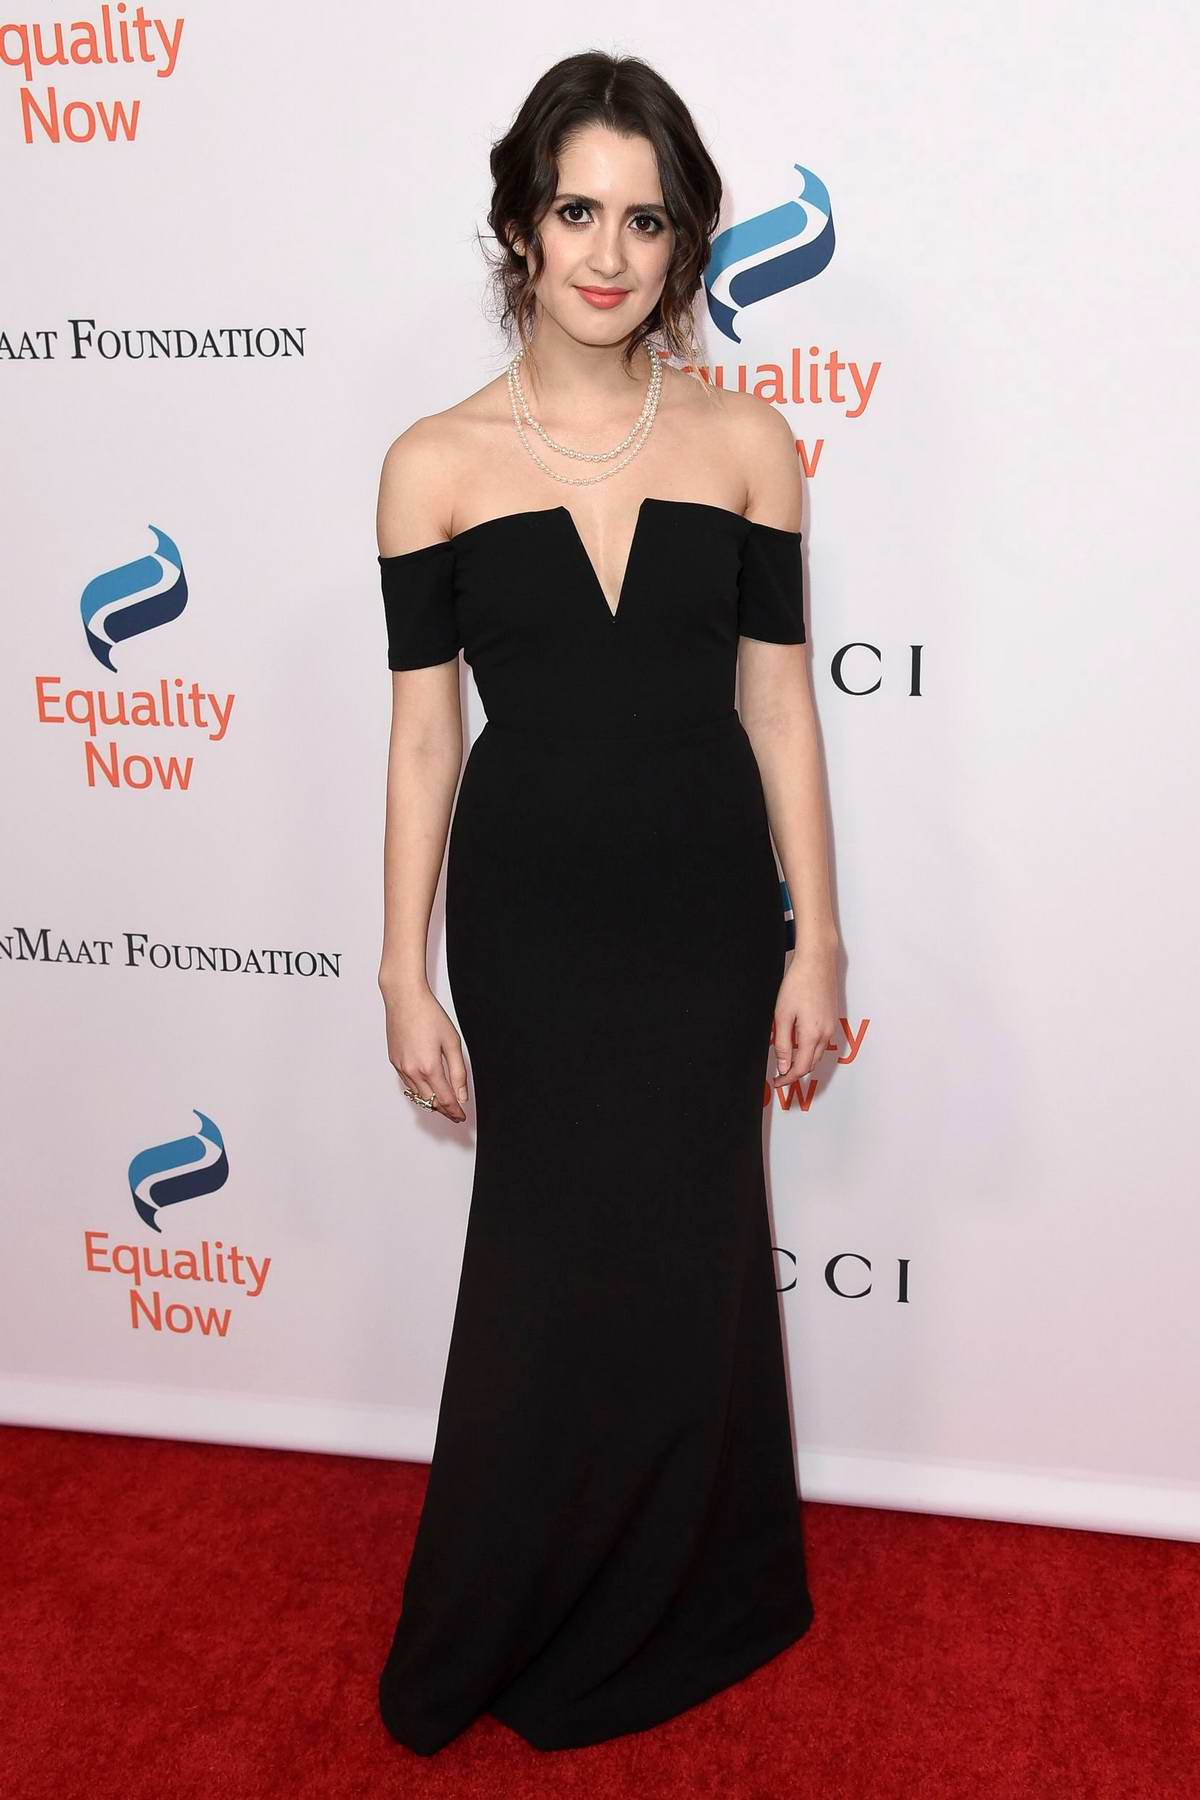 Laura Marano attends Equality Now's Annual Make Equality Reality Gala in Beverly Hills, Los Angeles